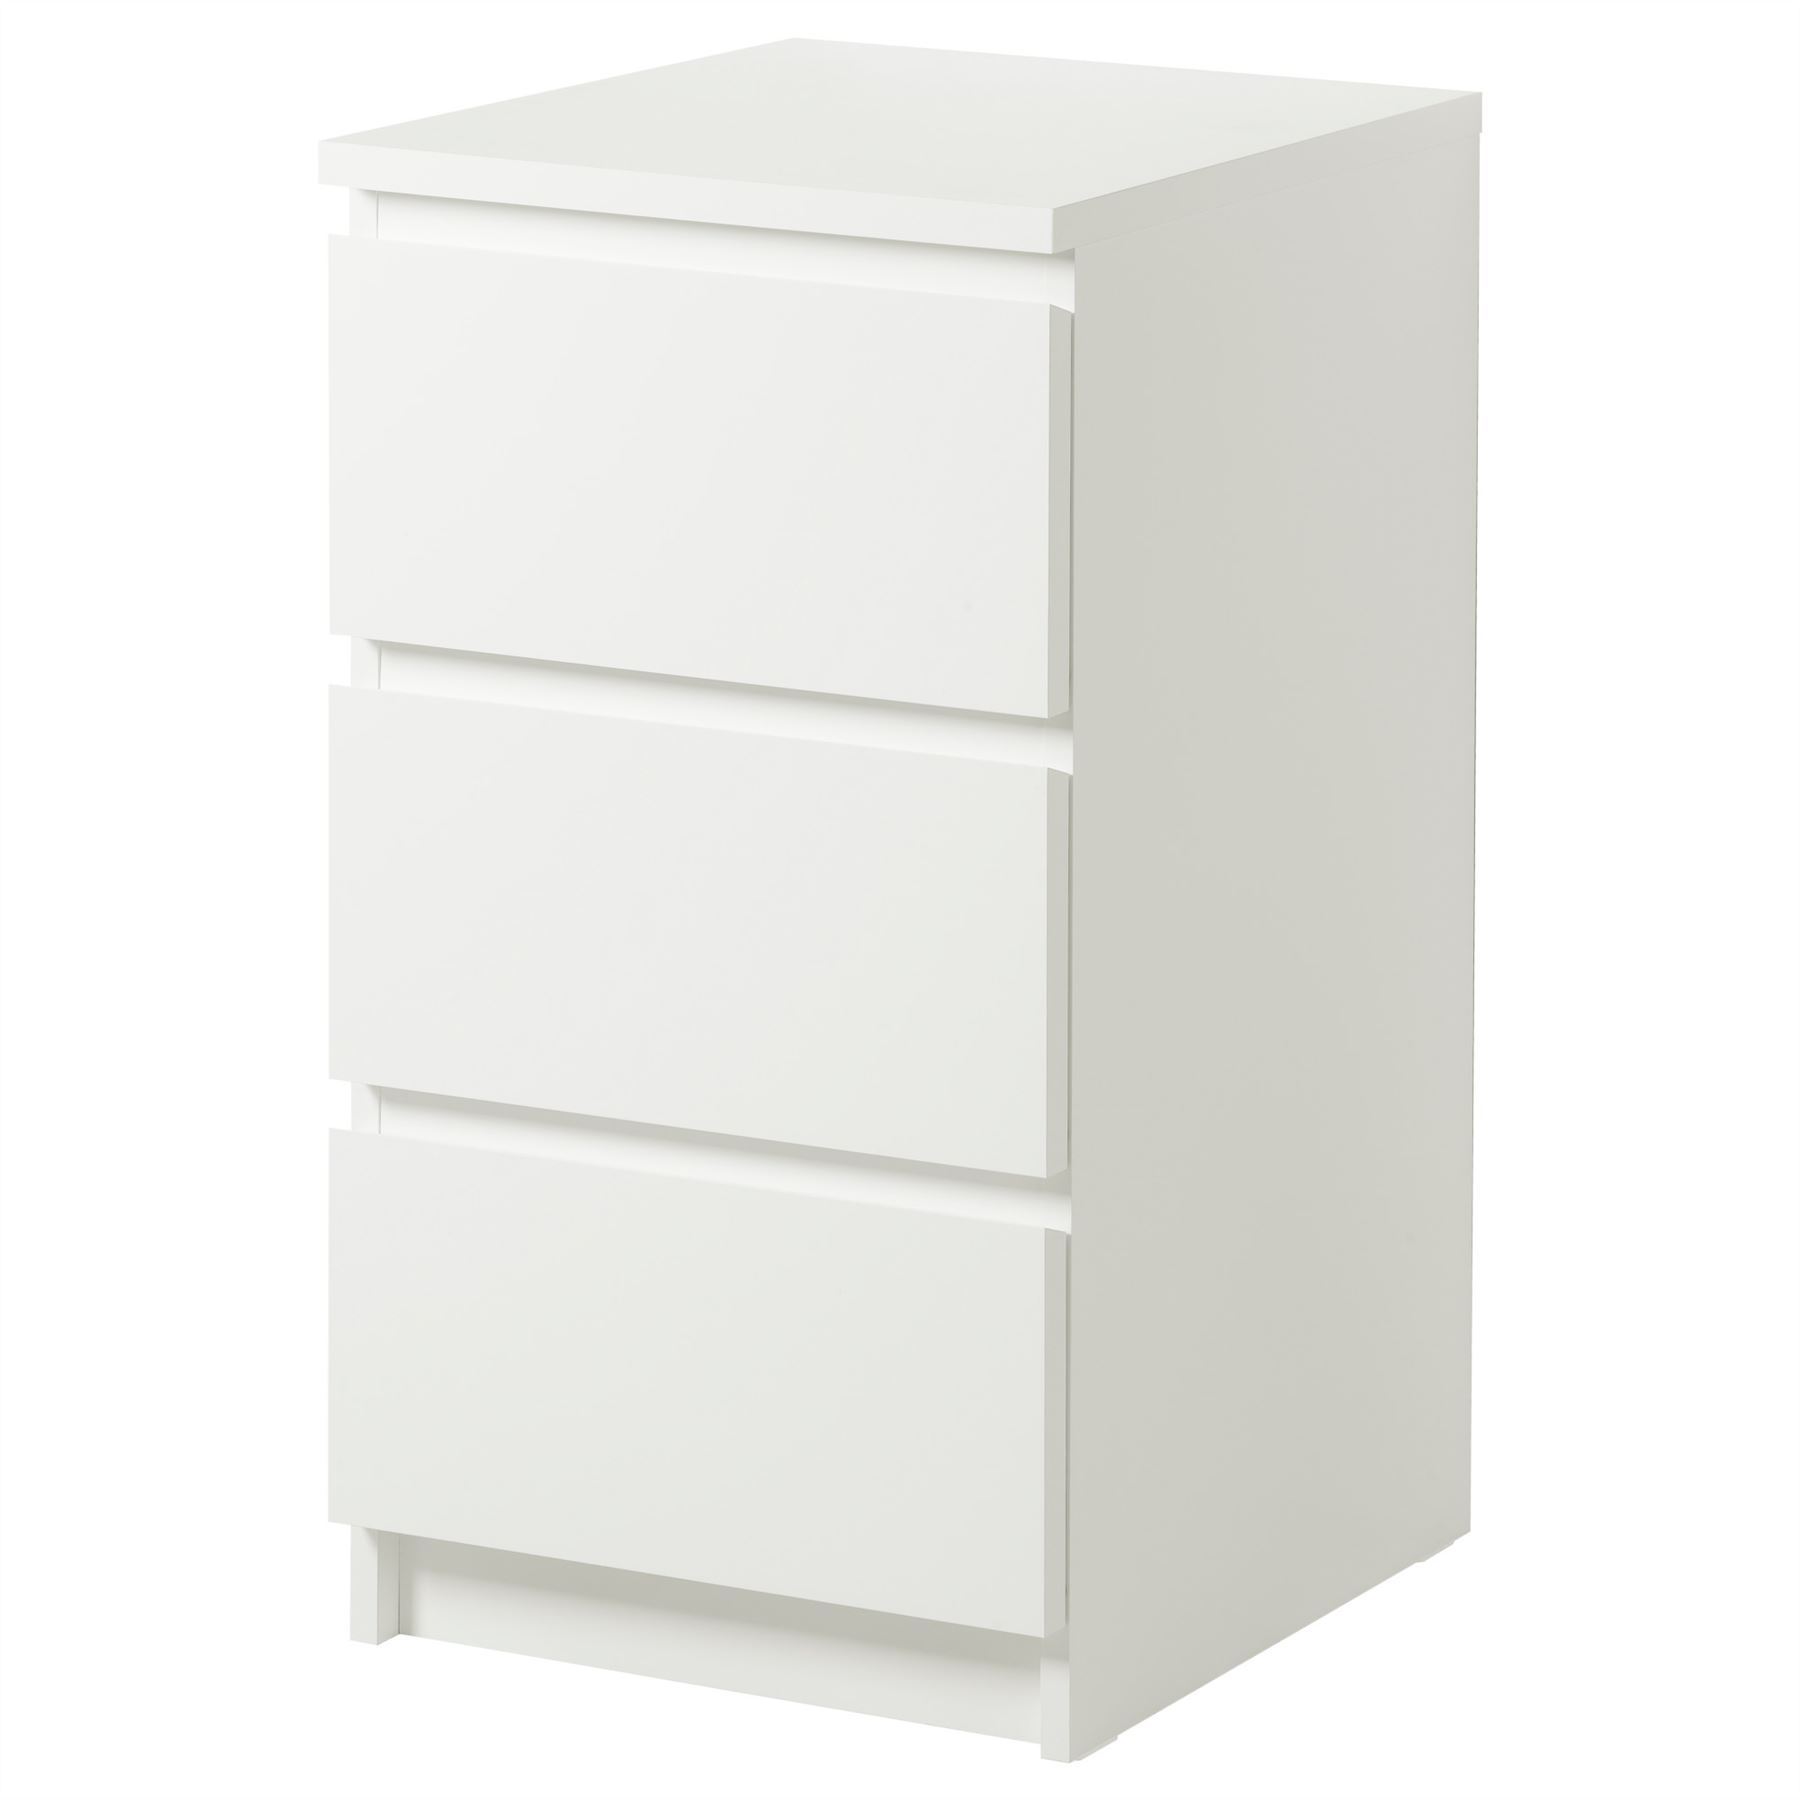 ikea malm chest of 3 drawers 40x78cm white bedroom. Black Bedroom Furniture Sets. Home Design Ideas